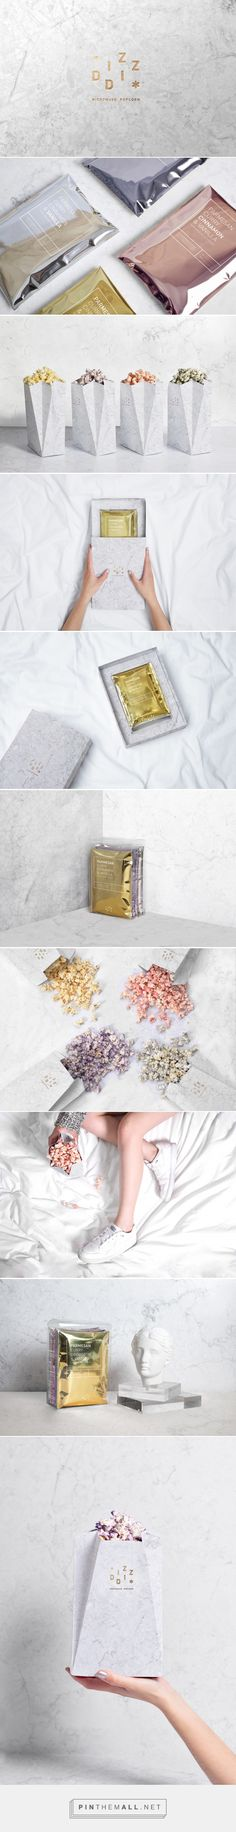 Diz-Diz is a gourmet brand of popcorn featuring unique flavors such as…